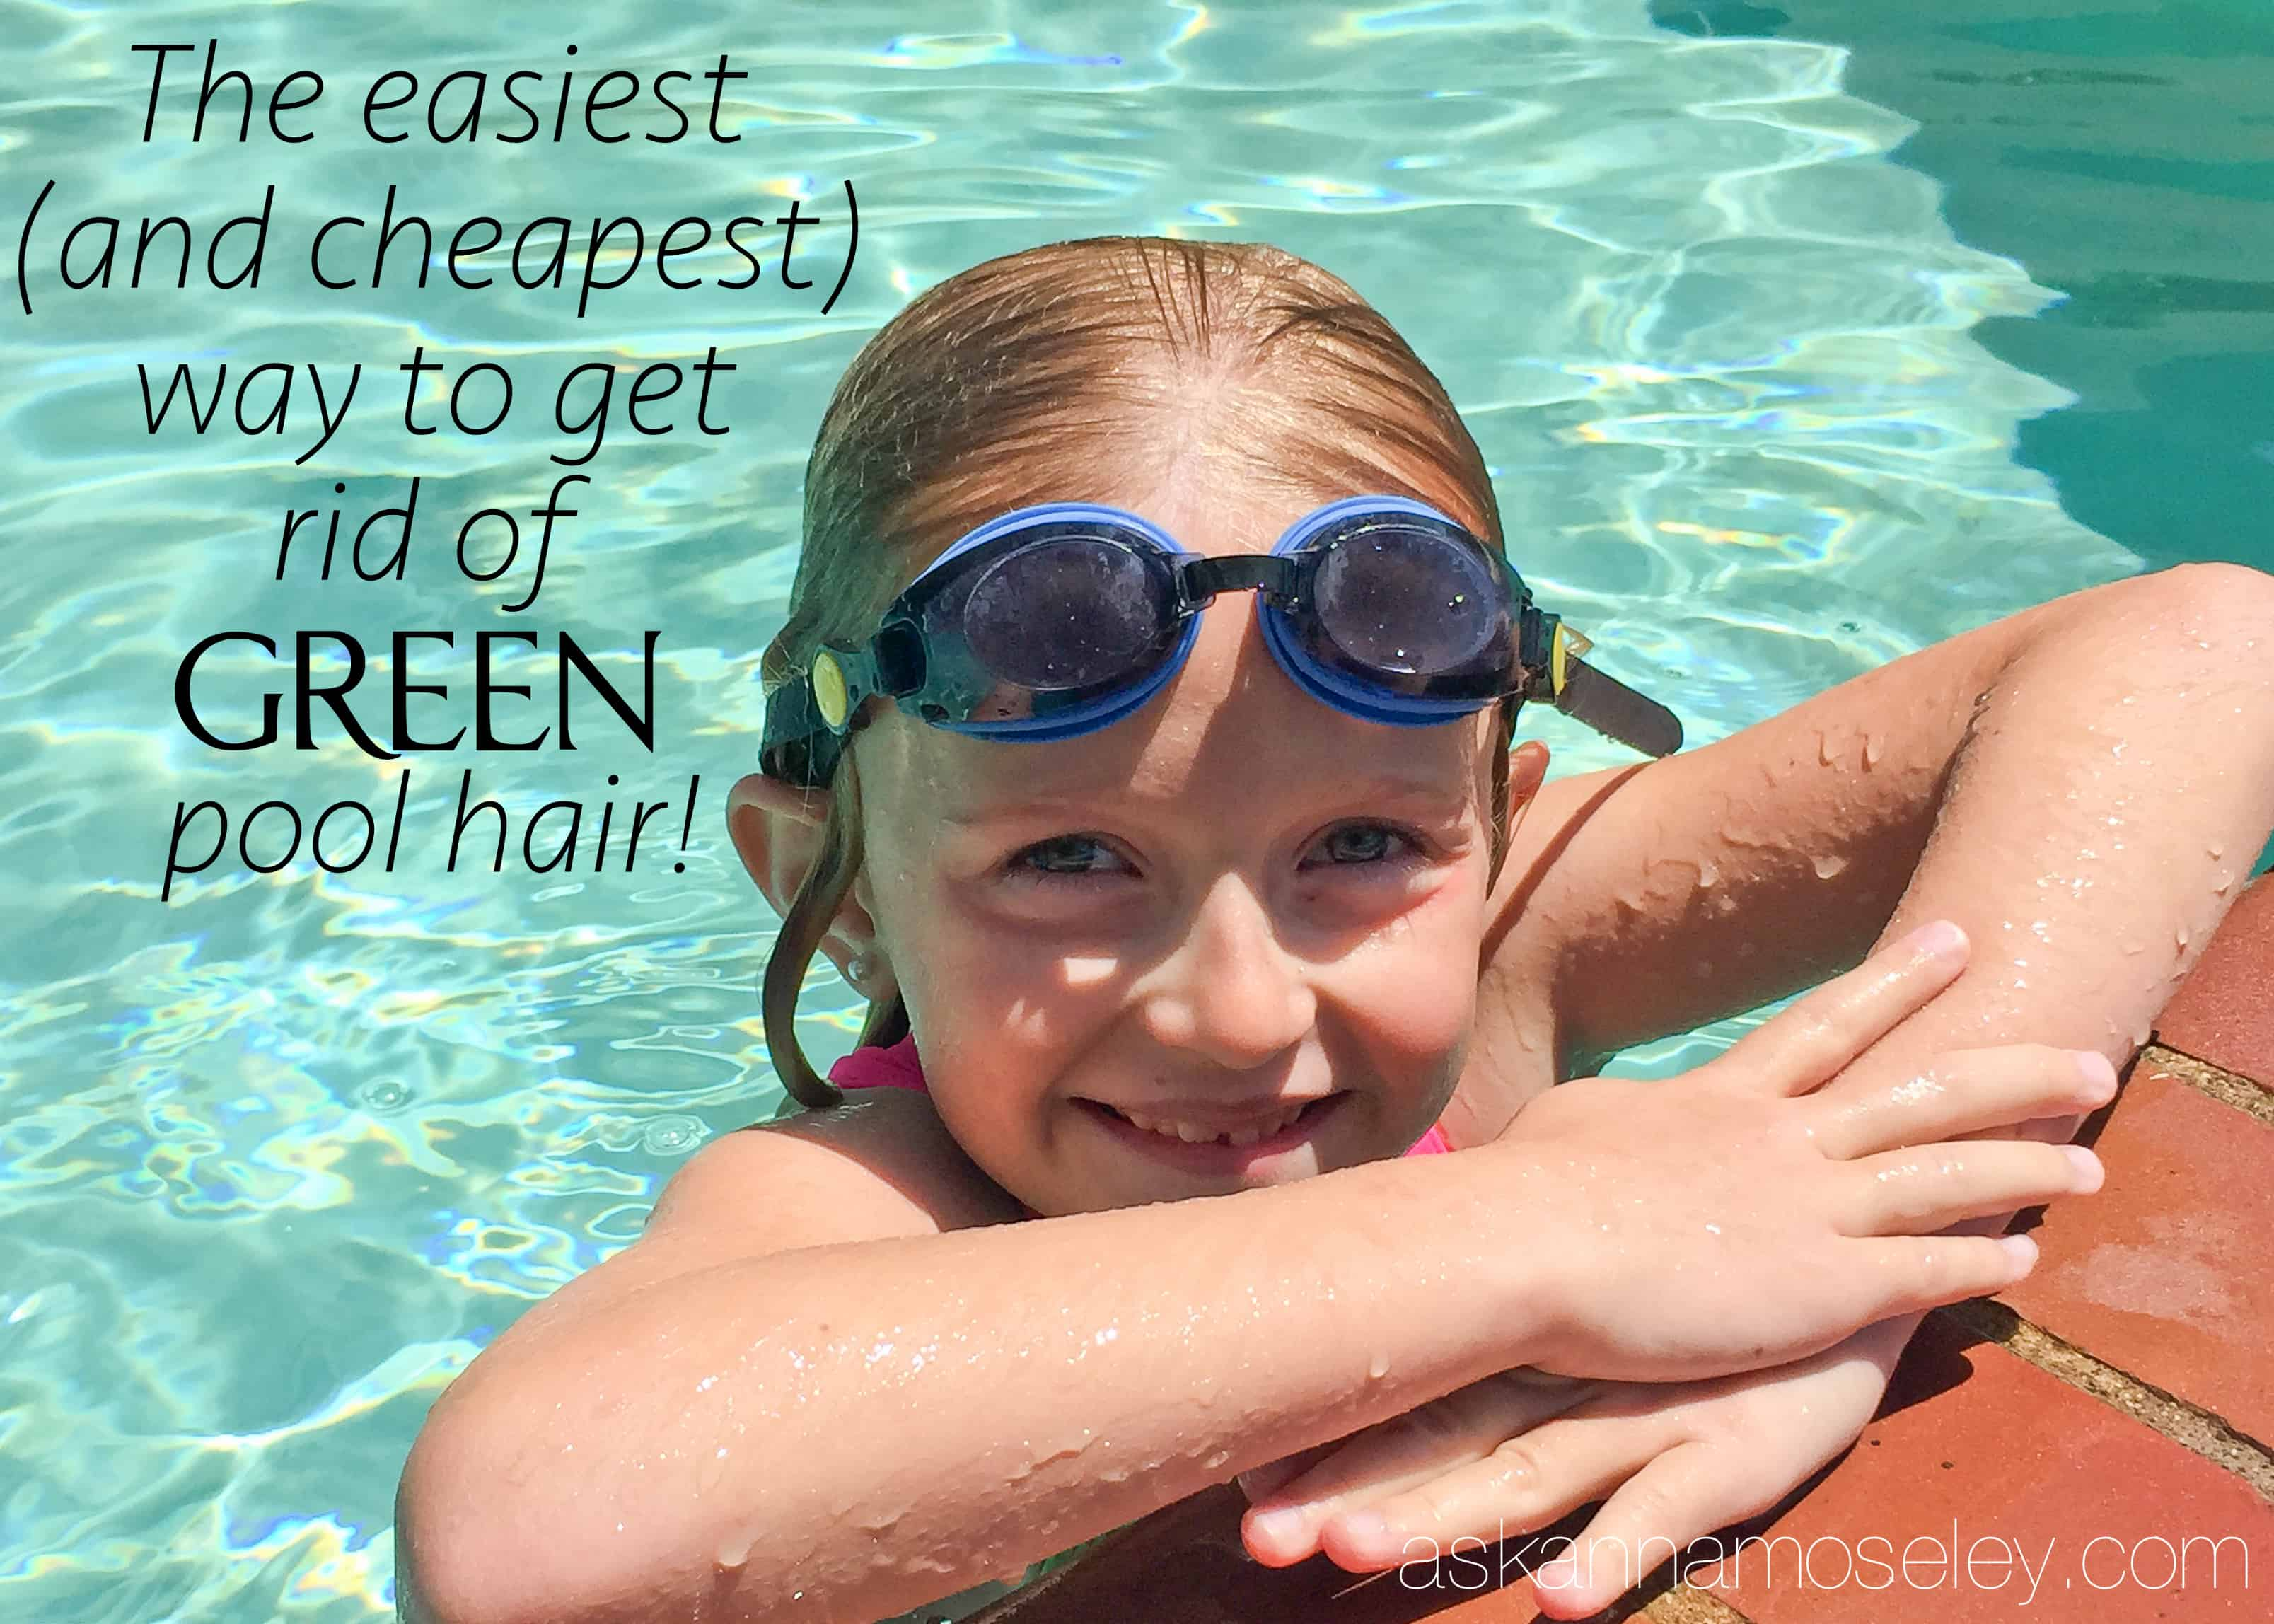 The easiest, and cheapest, way to get rid of green pool hair | Ask Anna